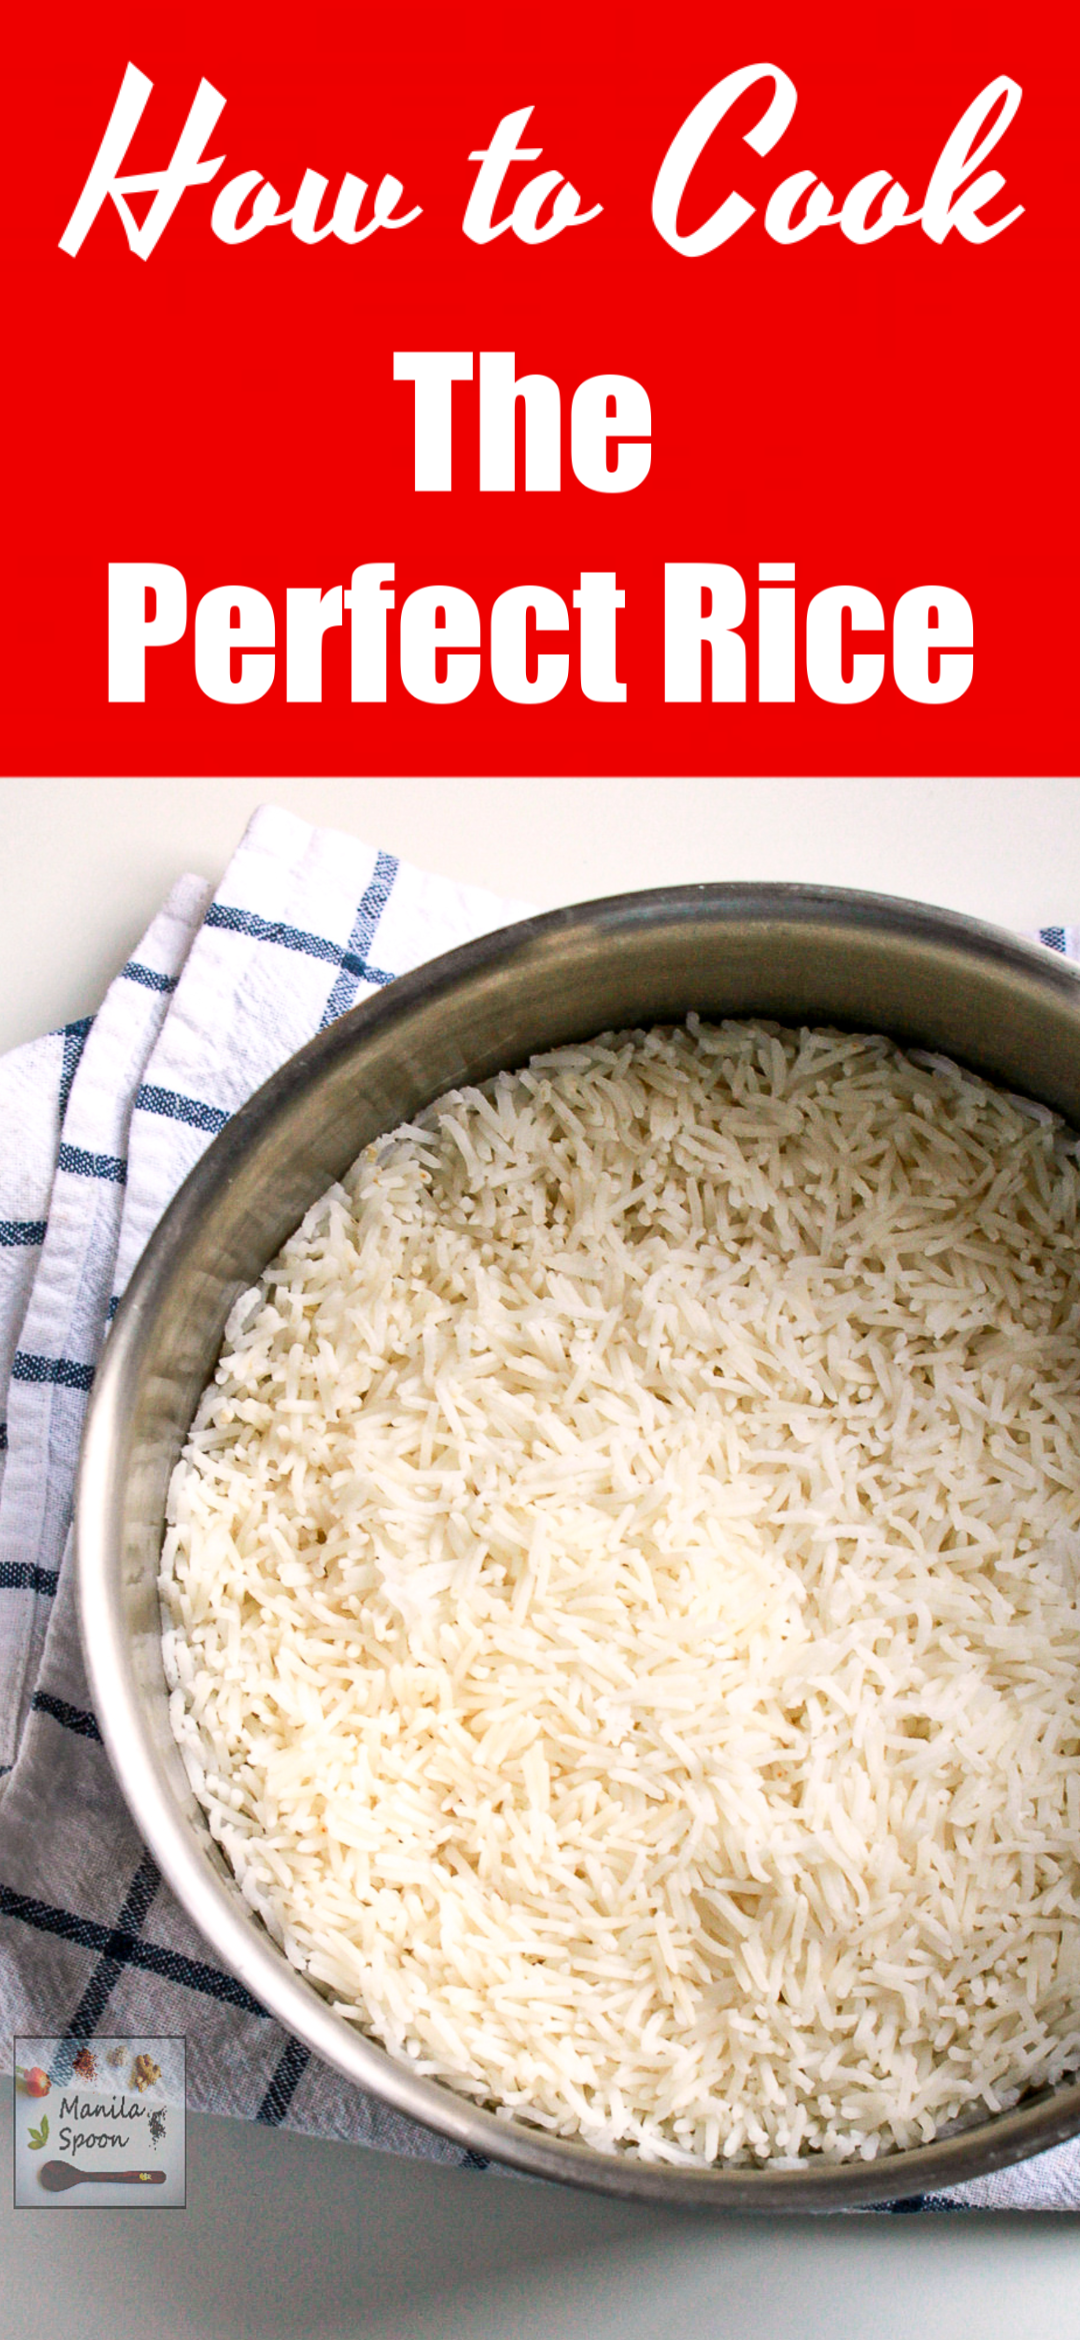 How To Cook the Perfect Rice